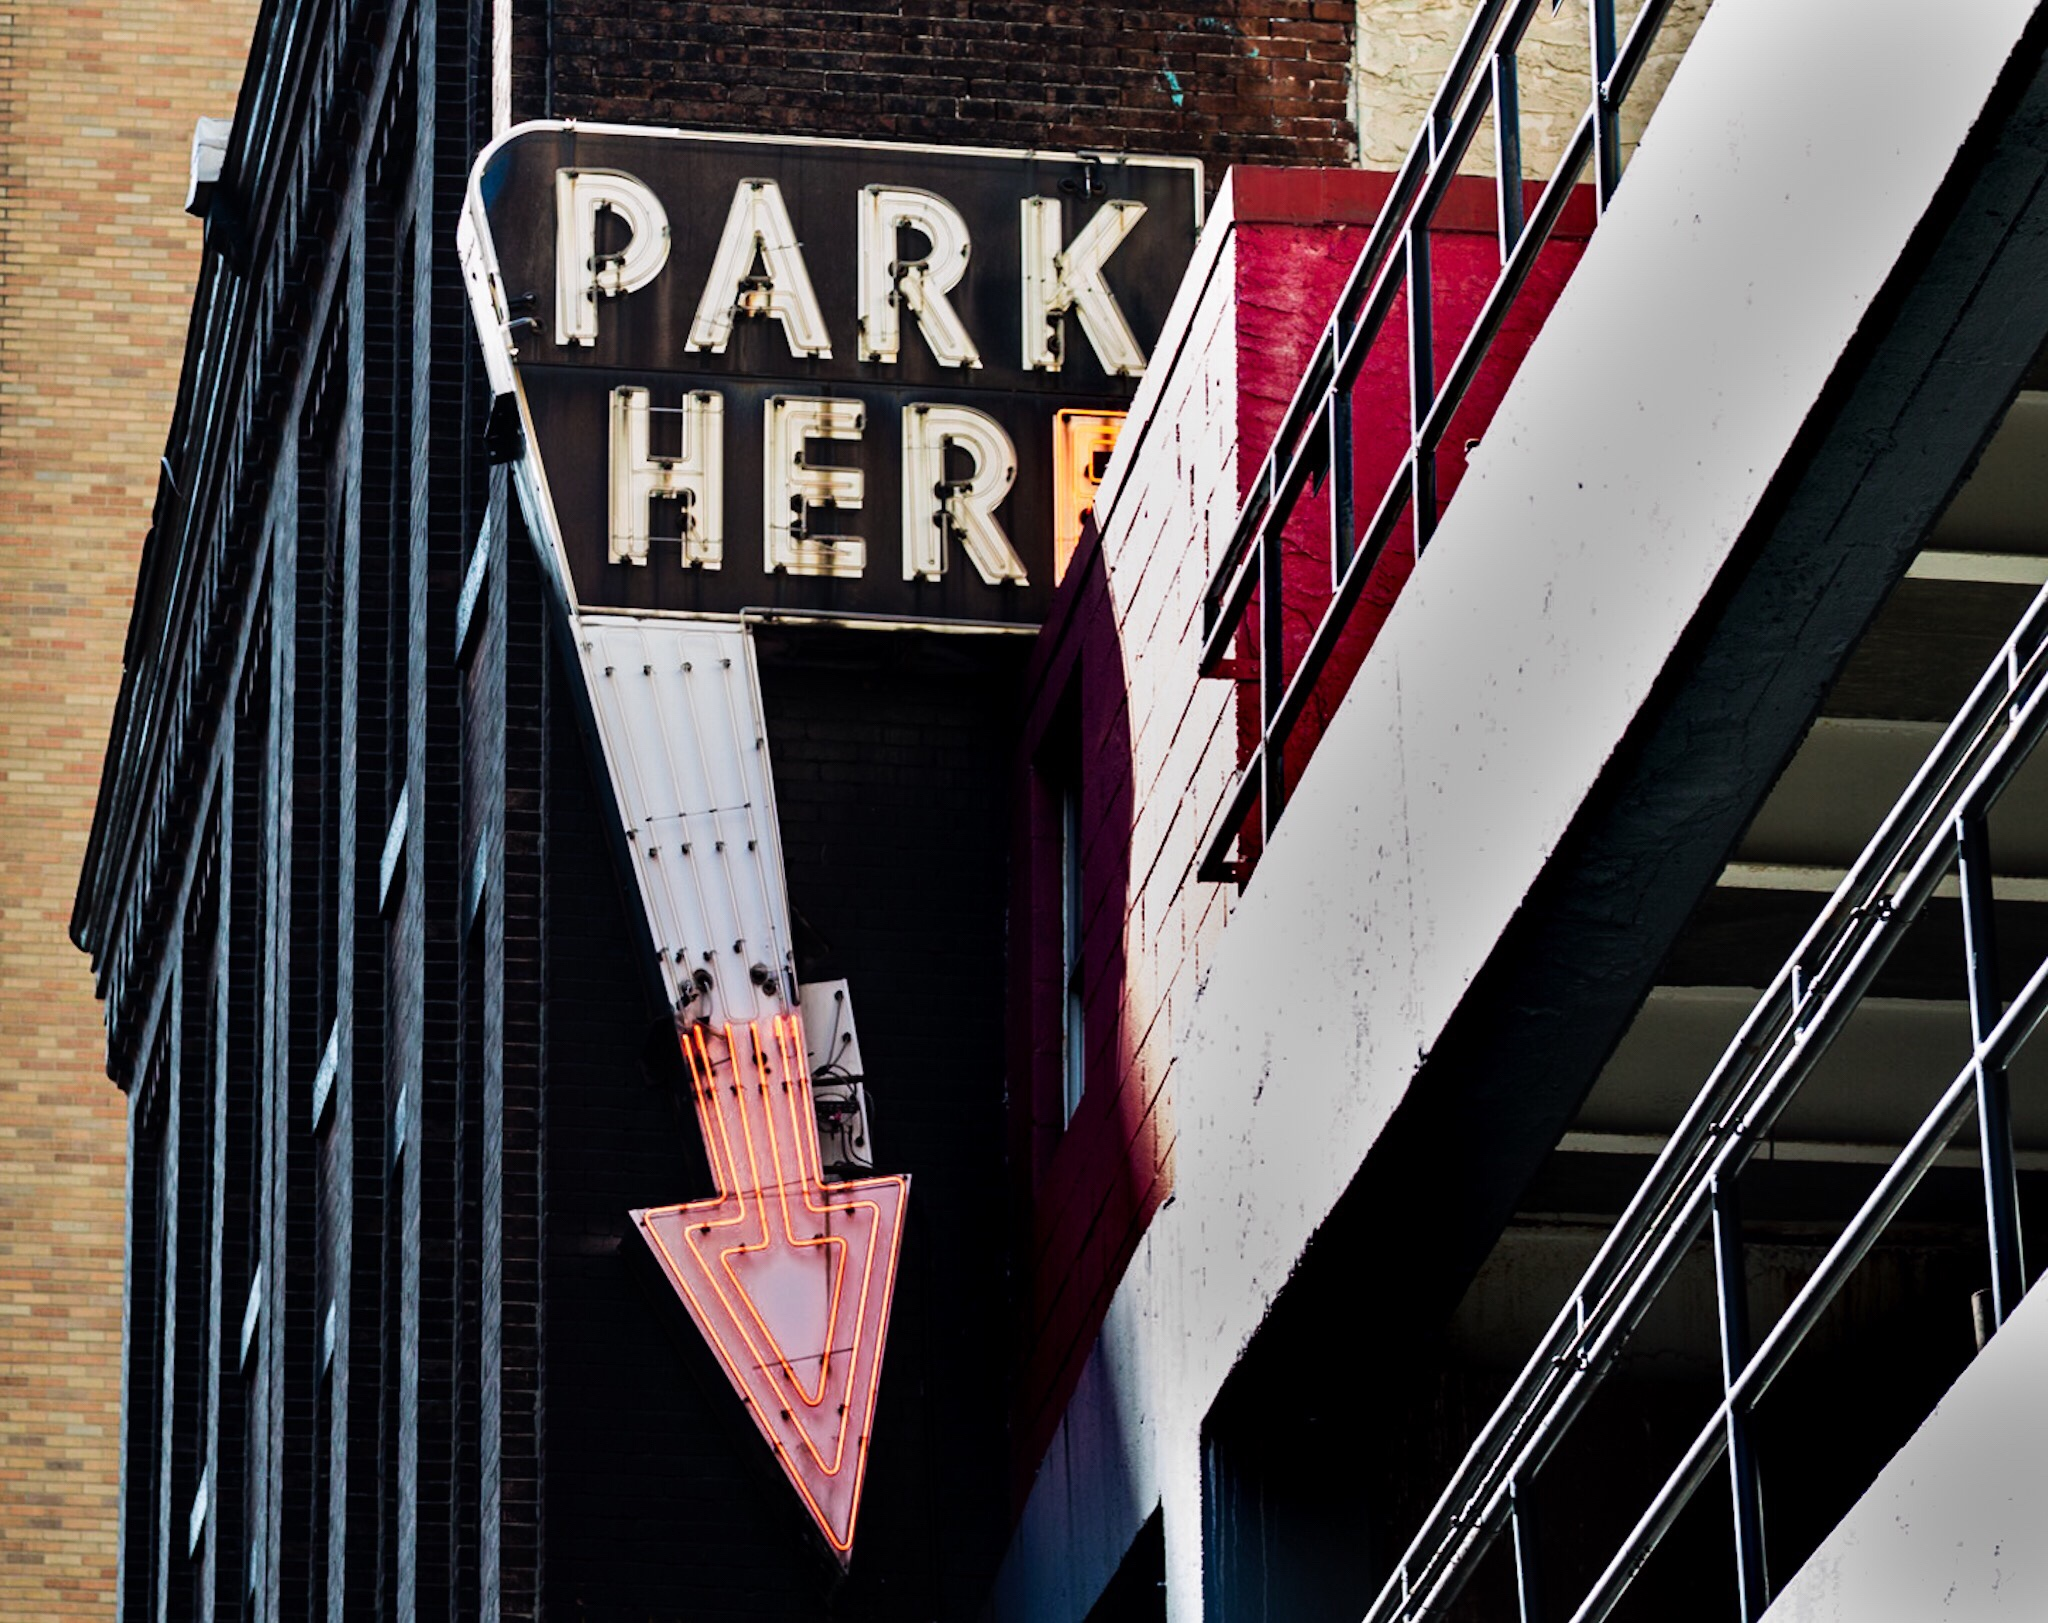 Philadelphia parking garage neon sign